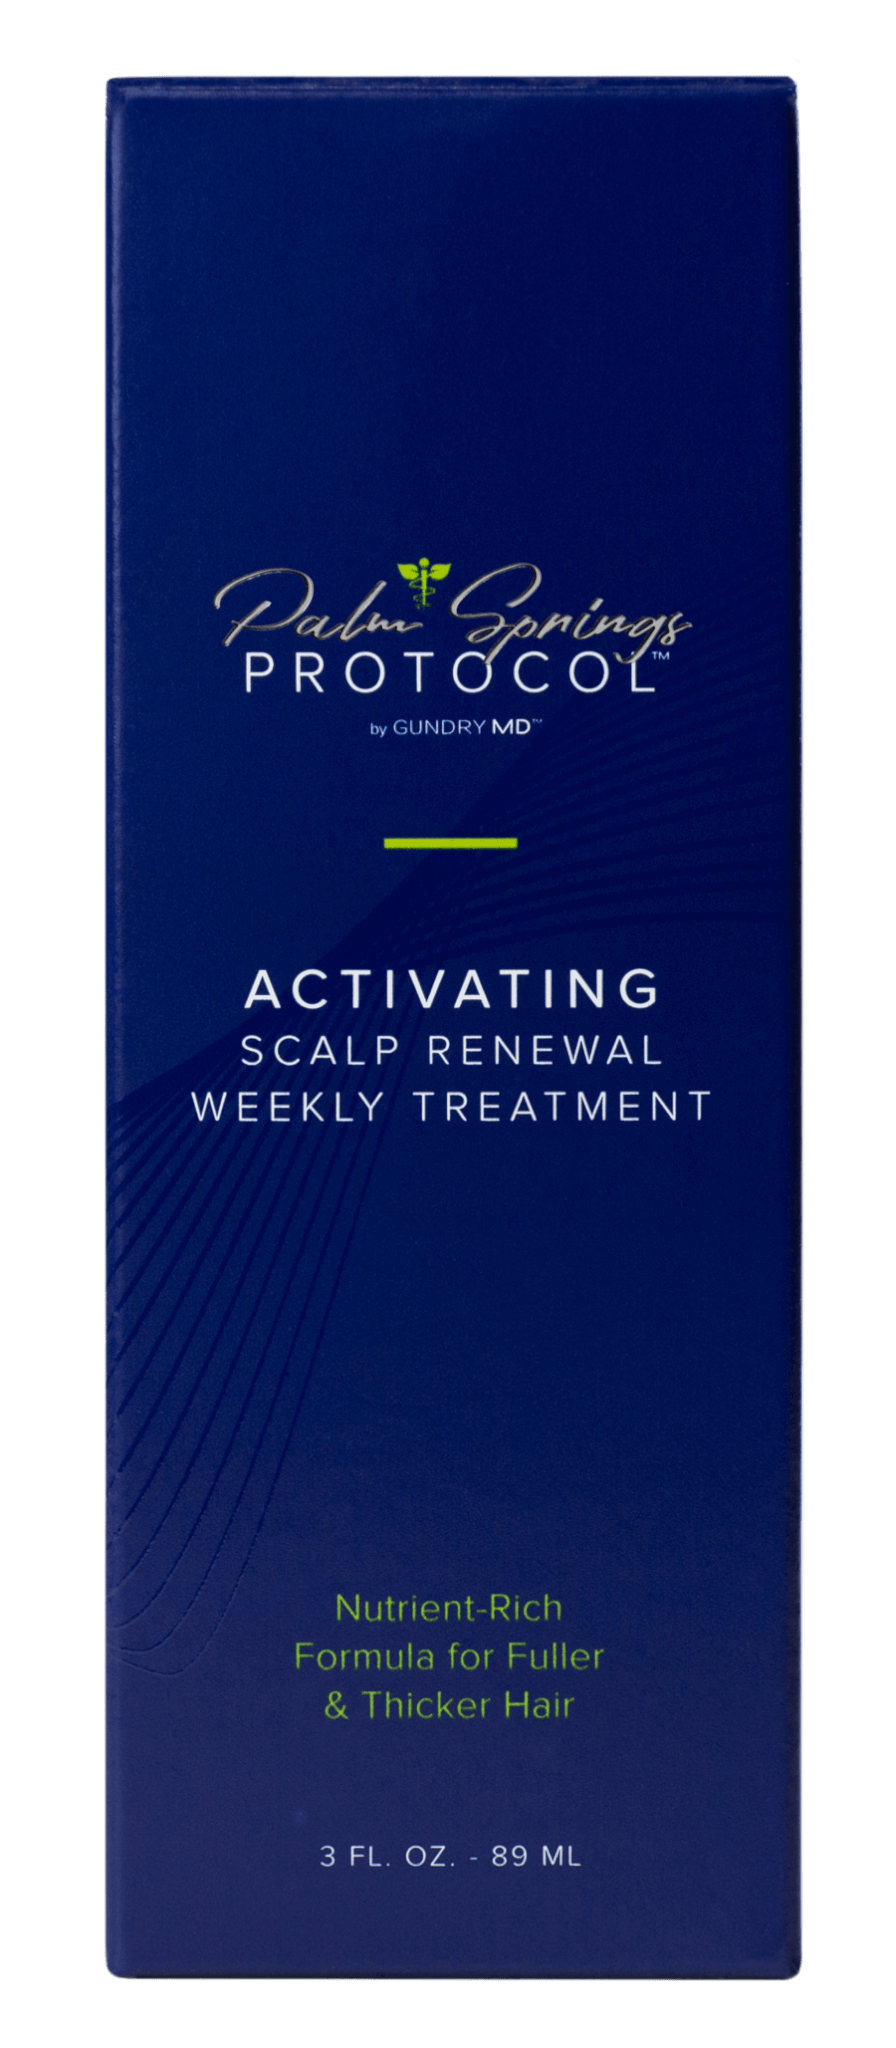 Activating Scalp Renewal Weekly Treatment